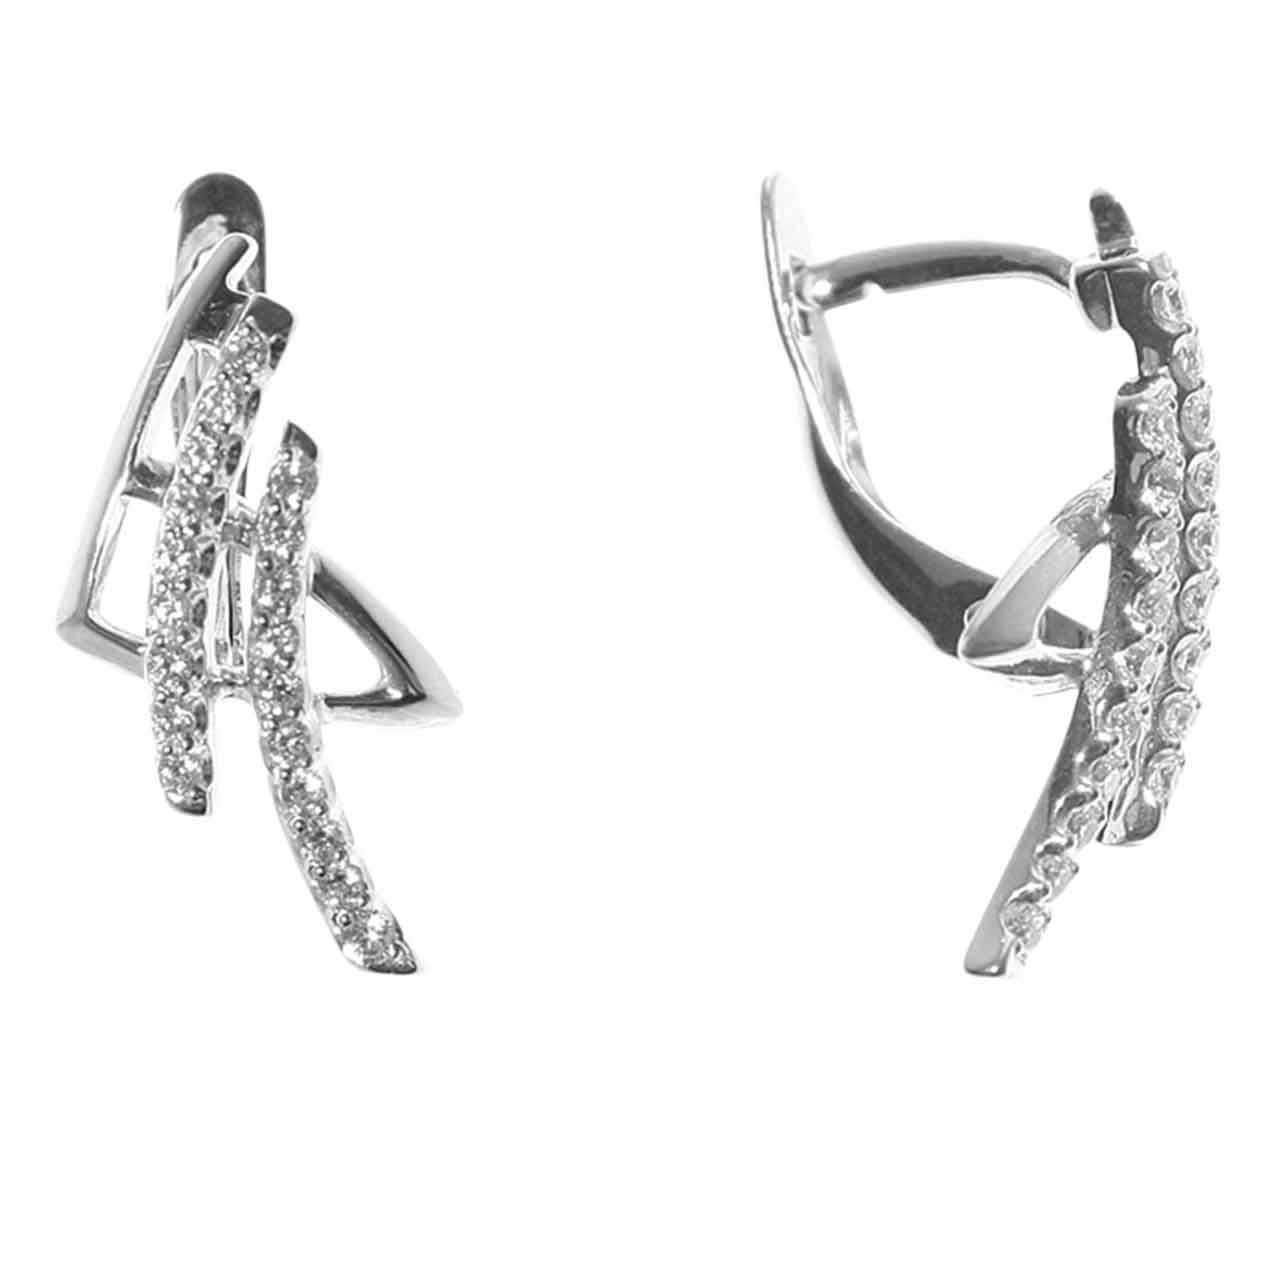 Oriental white gold earrings 1